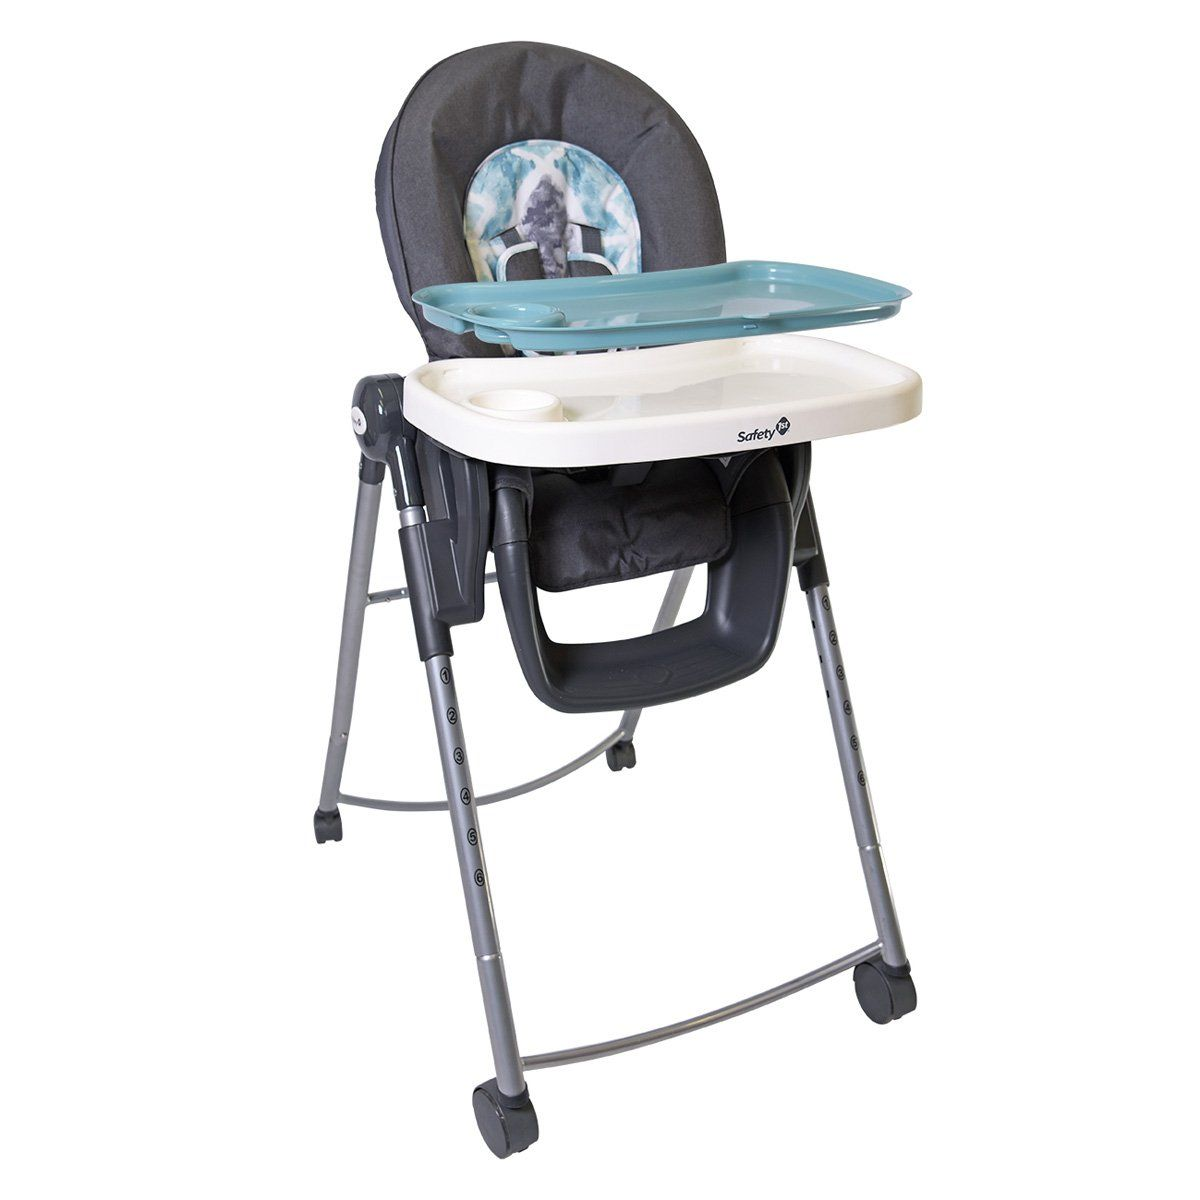 Safety 1st Adaptable High Chair Reverie High Chair Safety 1st